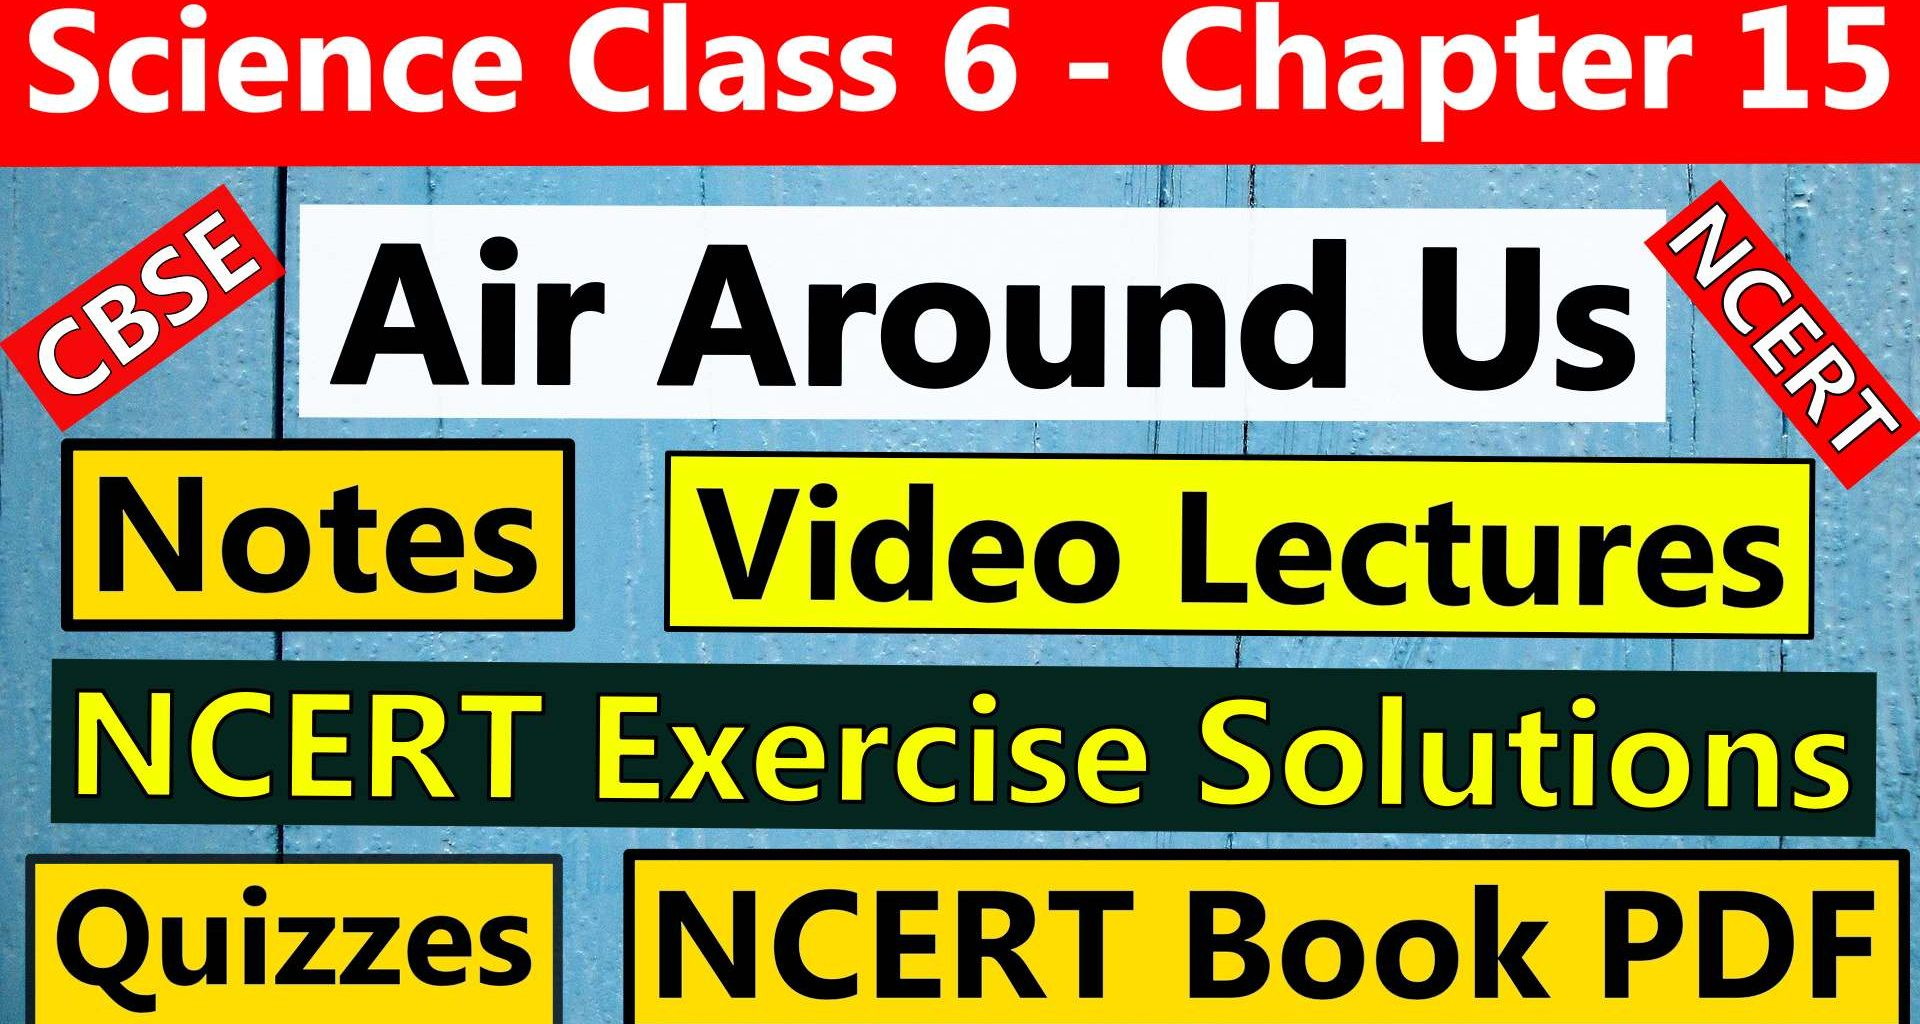 Science class 6 - Chapter 15 -Air Around Us